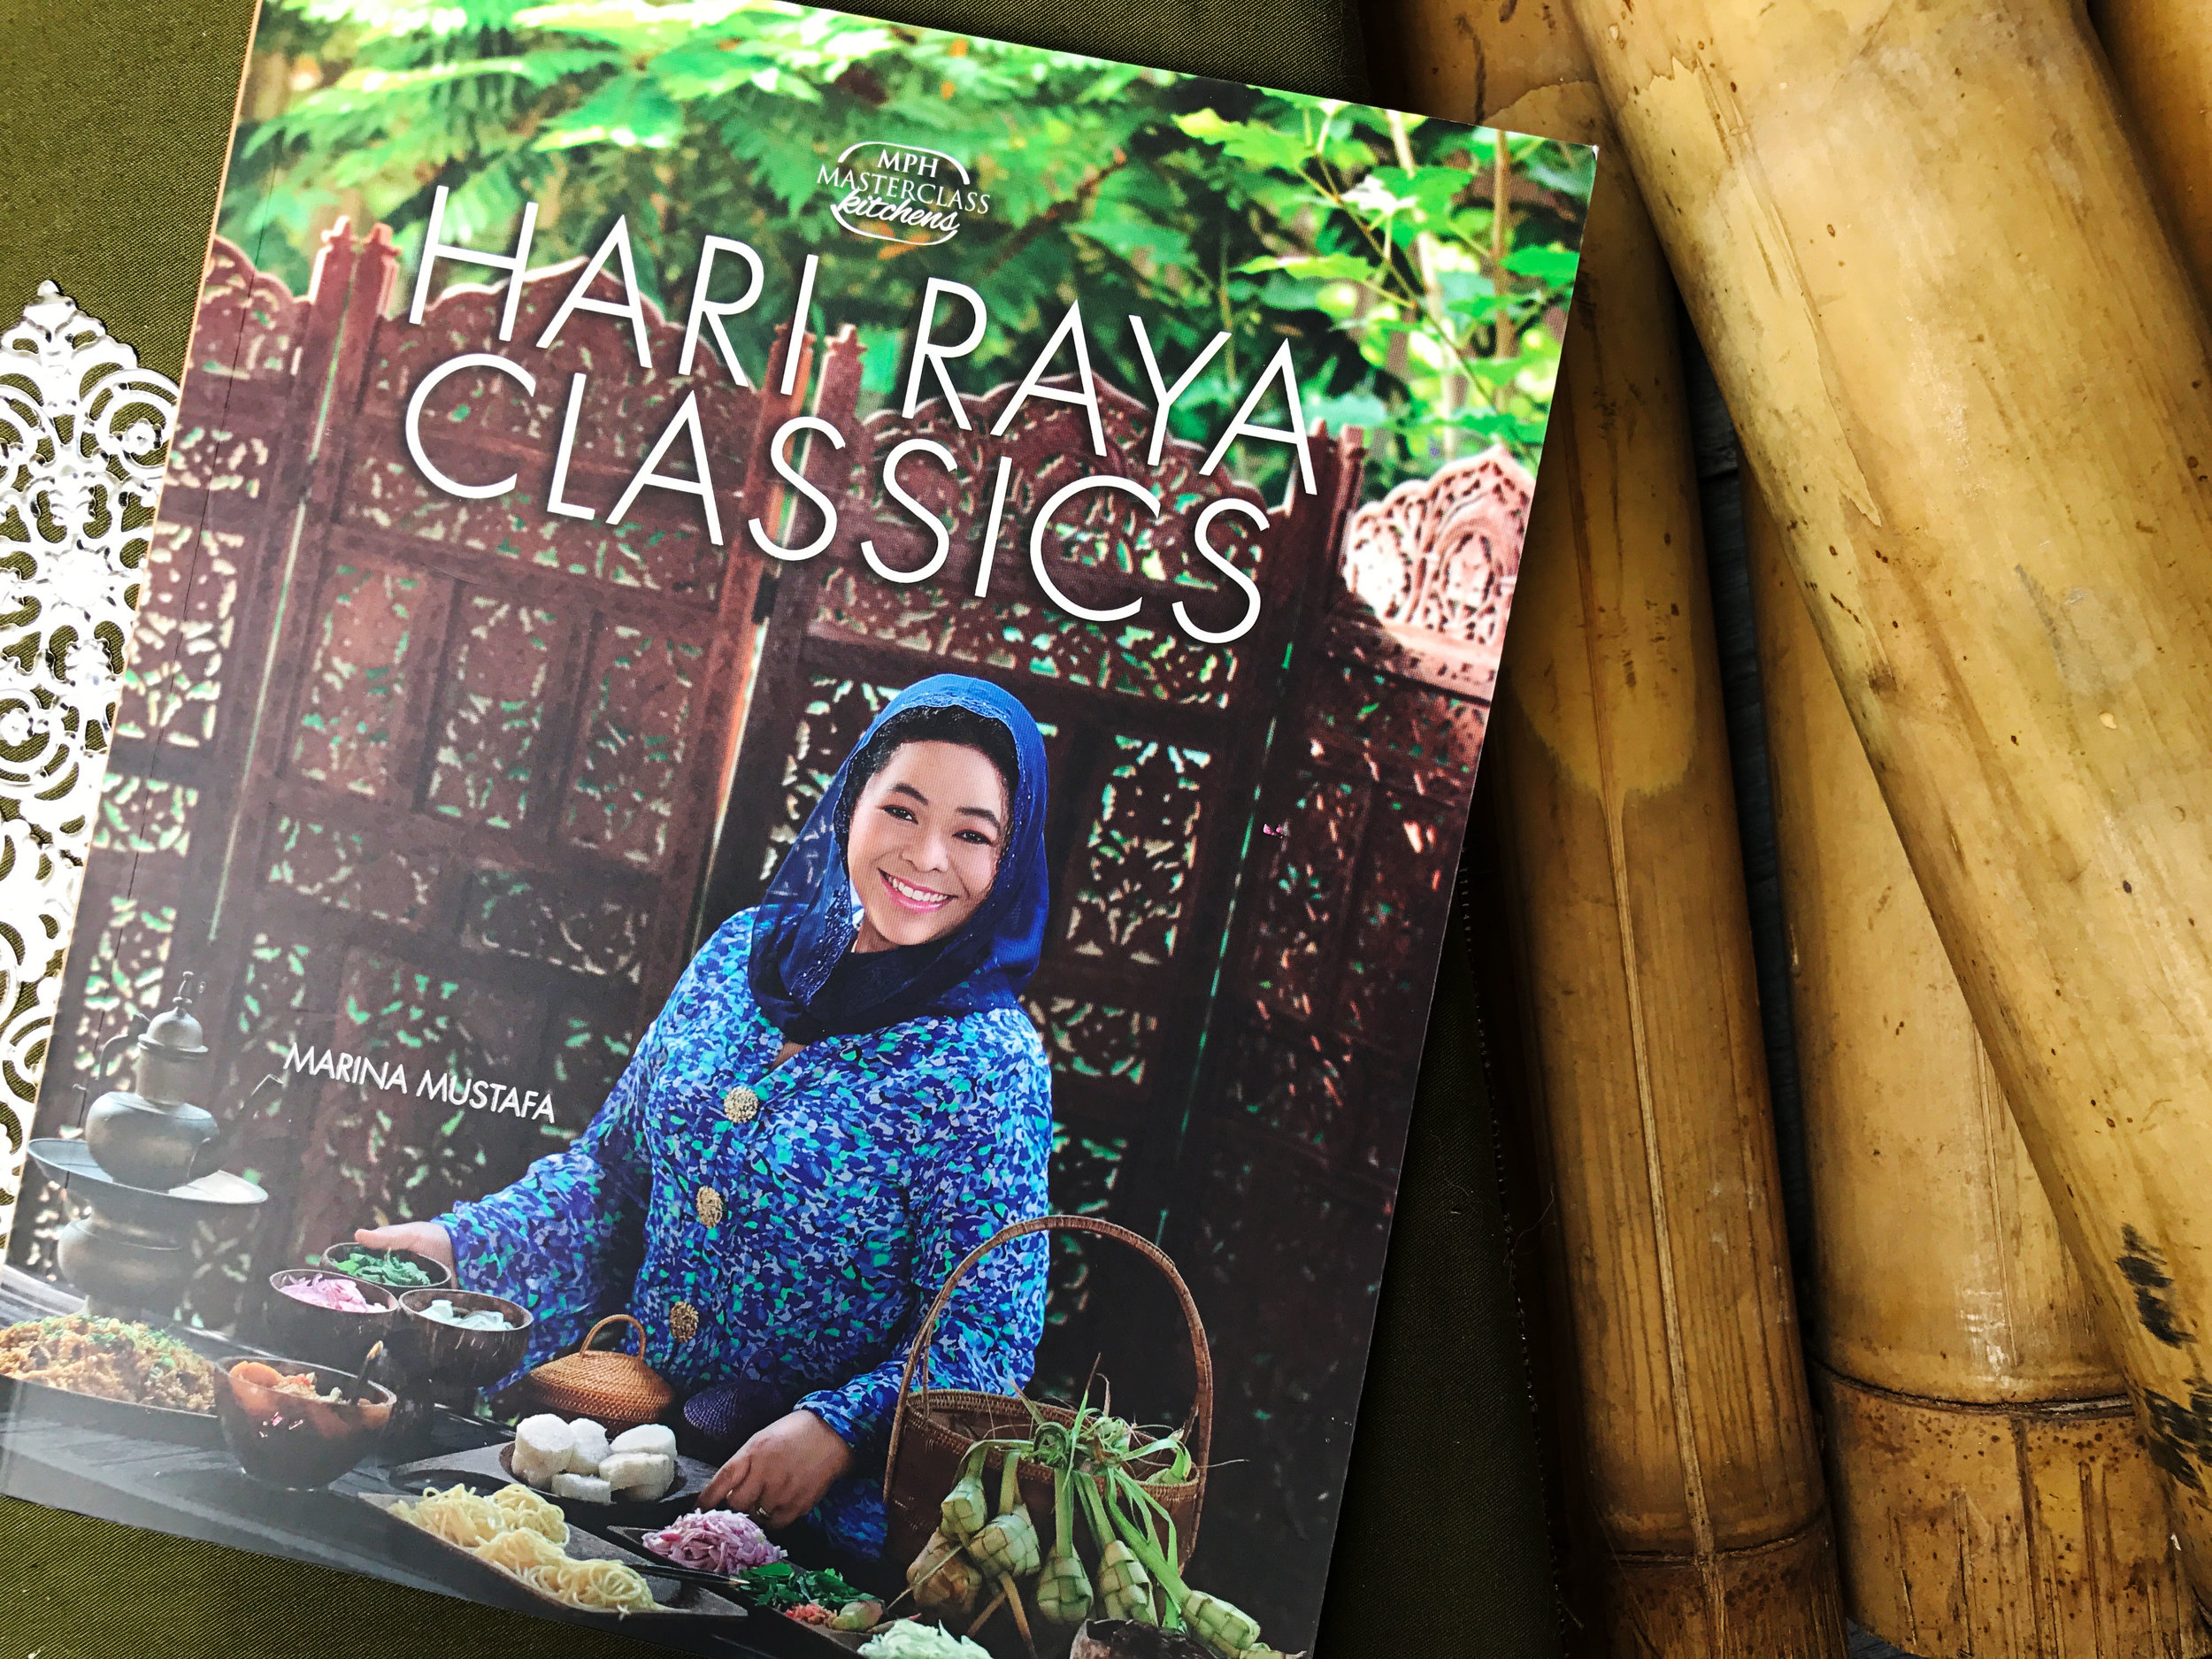 Hari Raya Classics - All the classic Hari Raya dishes is compiled in this one book. The treasures of Hari Raya..like Rendang of every state, Serunding, Lemang & Ketupat are all gathered in Hari Raya classics for past, present & future generations. There are also step by step tips & guides on how to make Hari Raya preparations a breeze.